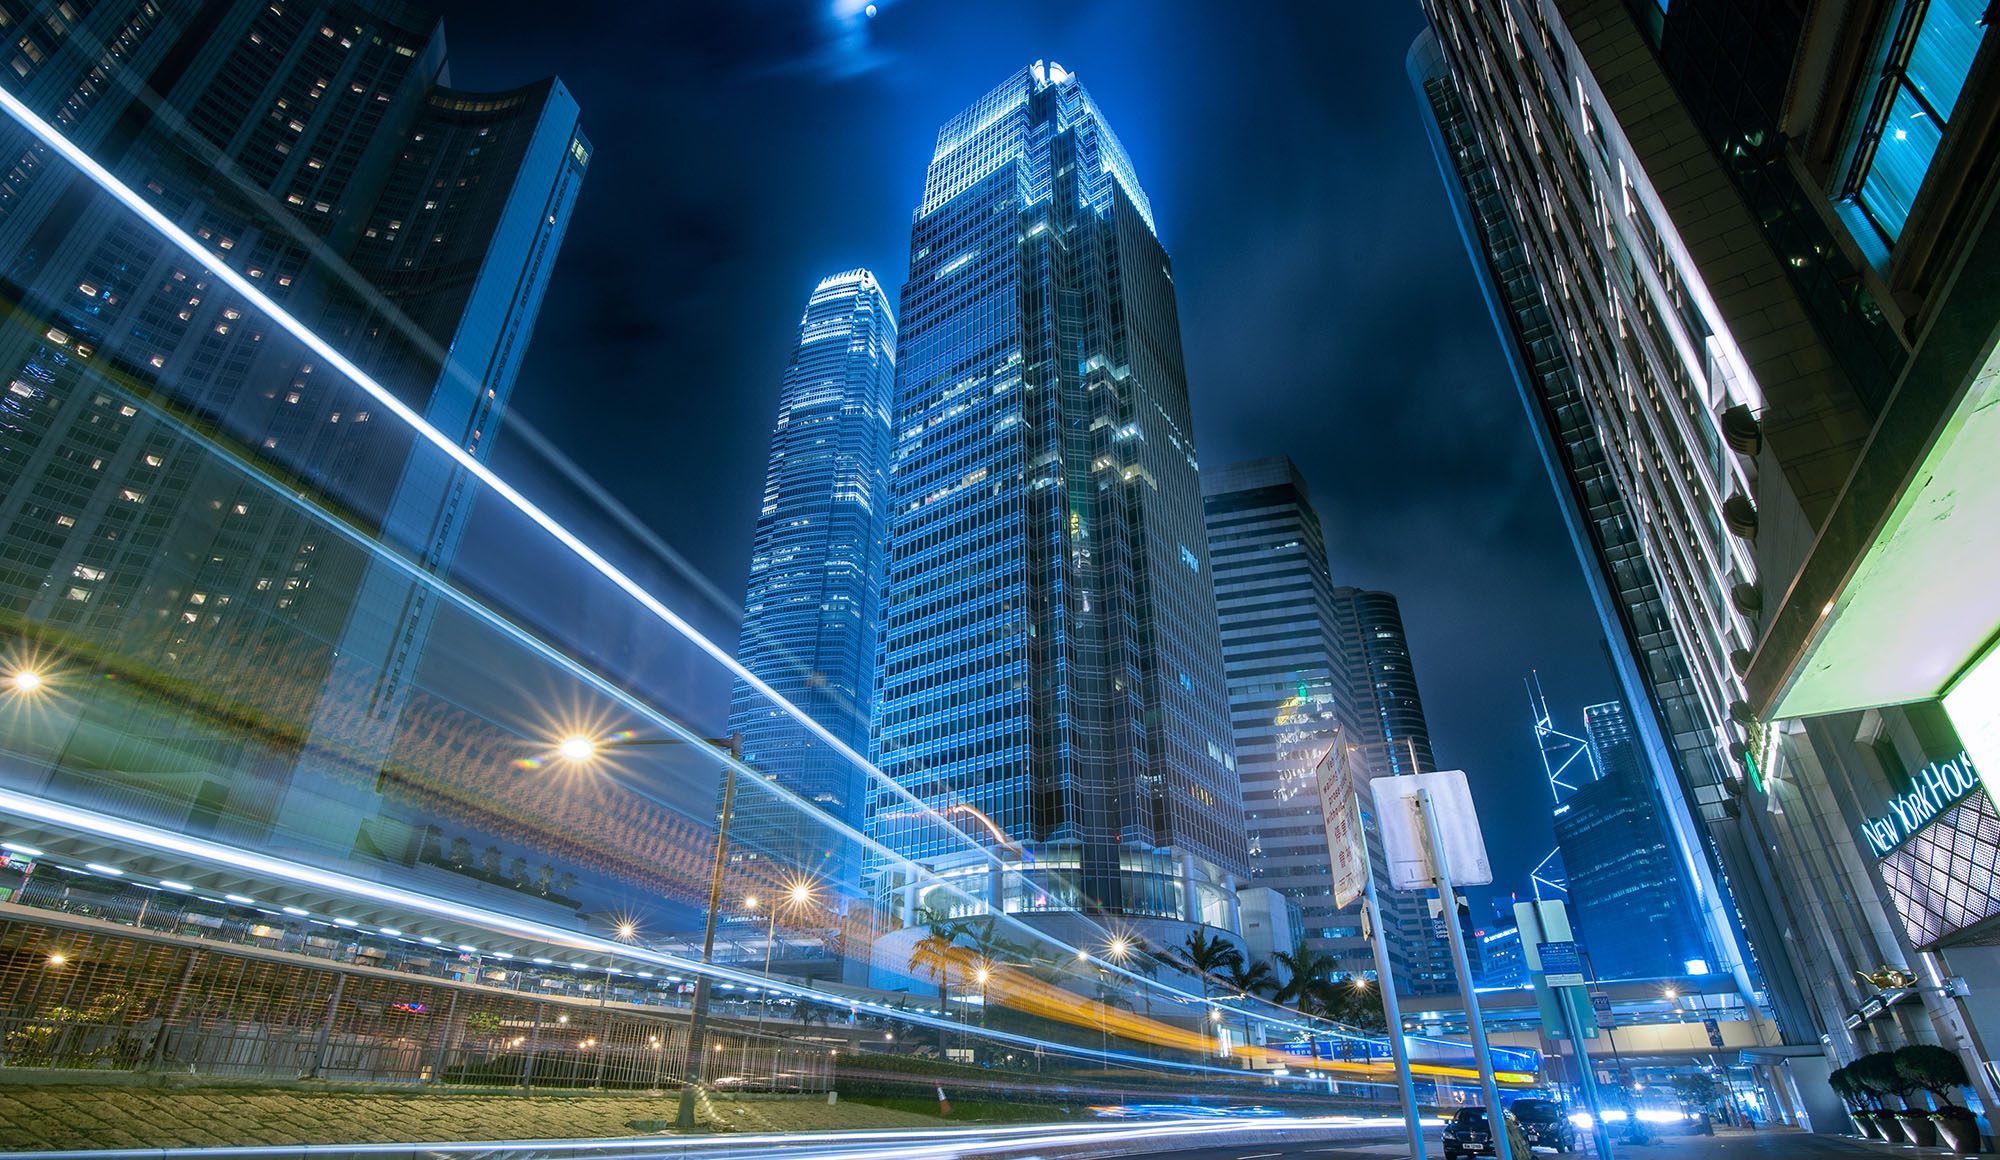 5 Tips for Getting Sharper Images When Doing Long Exposures